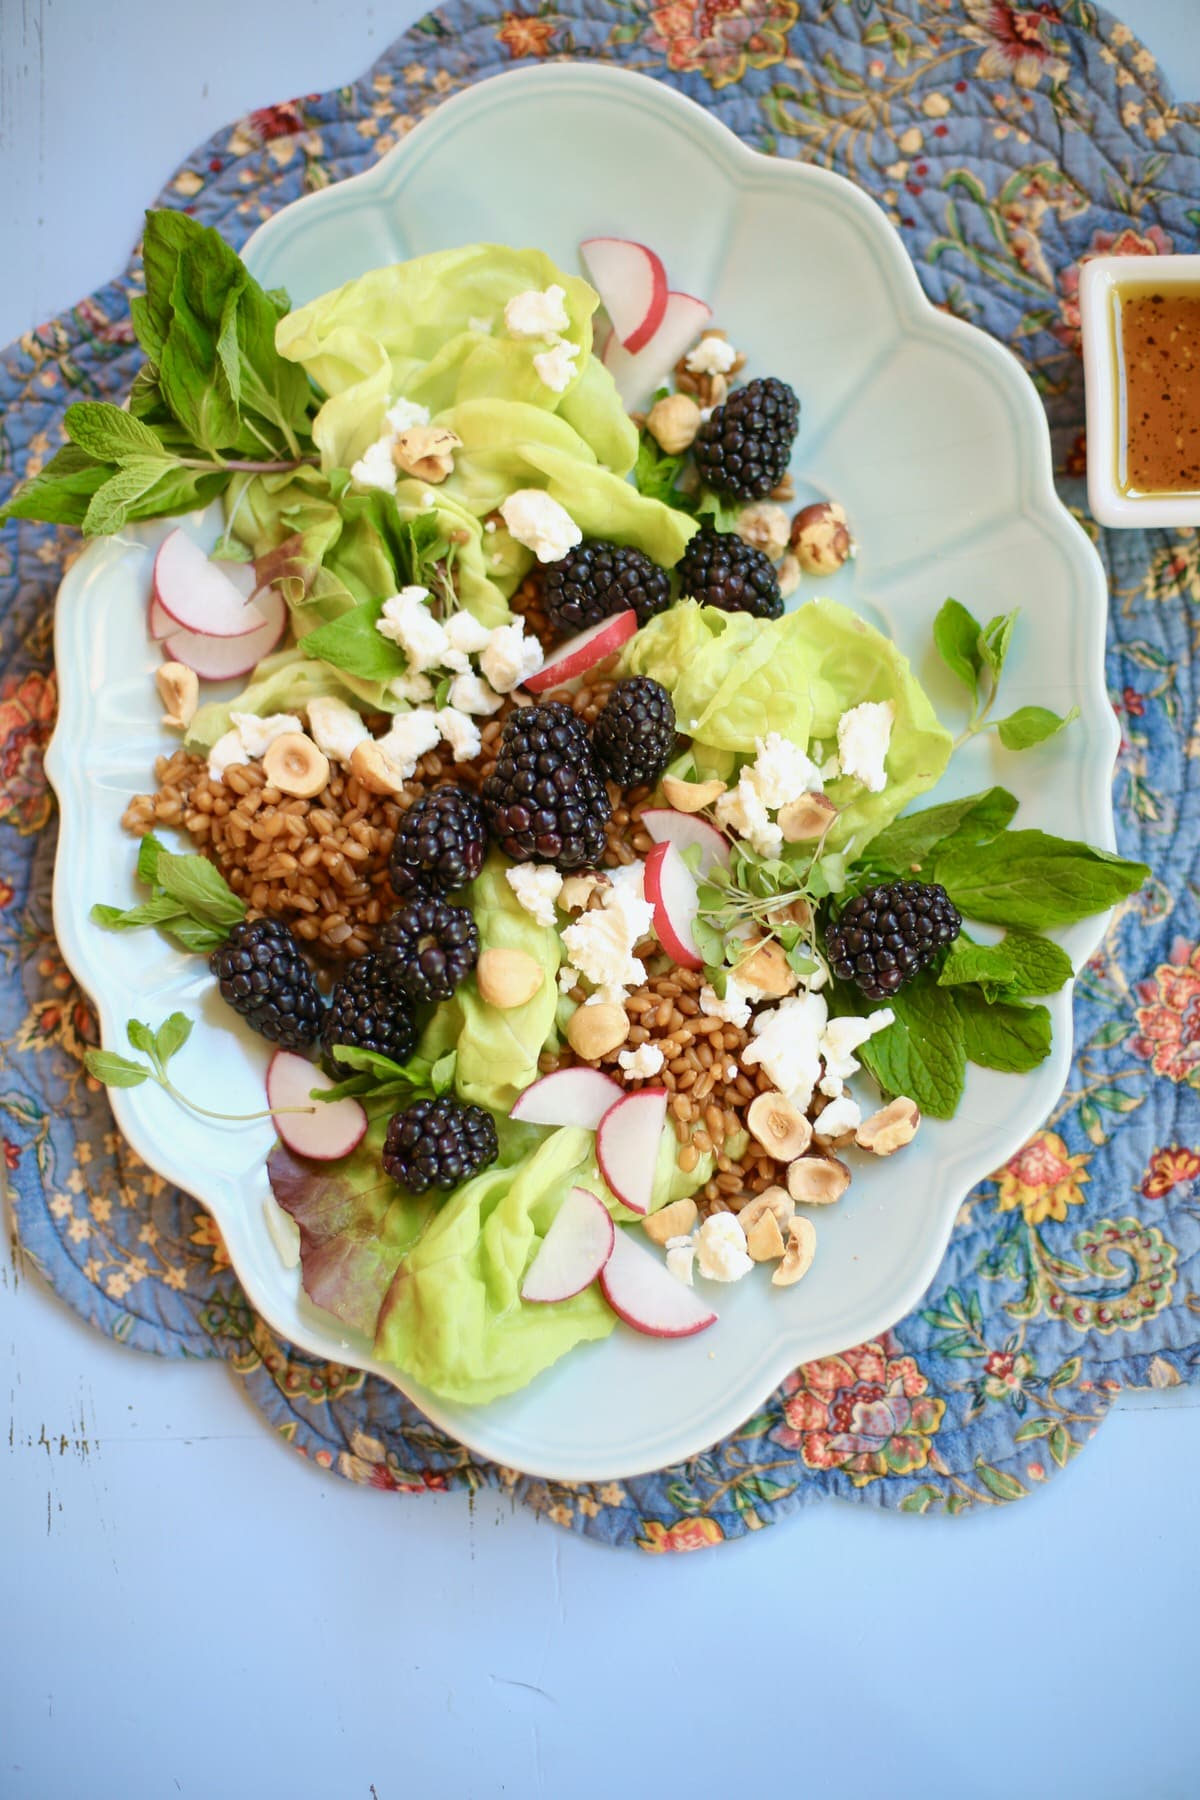 Salad with hazelnuts, greens, blackberries goat cheese grains and radish on a long blue plate on a table